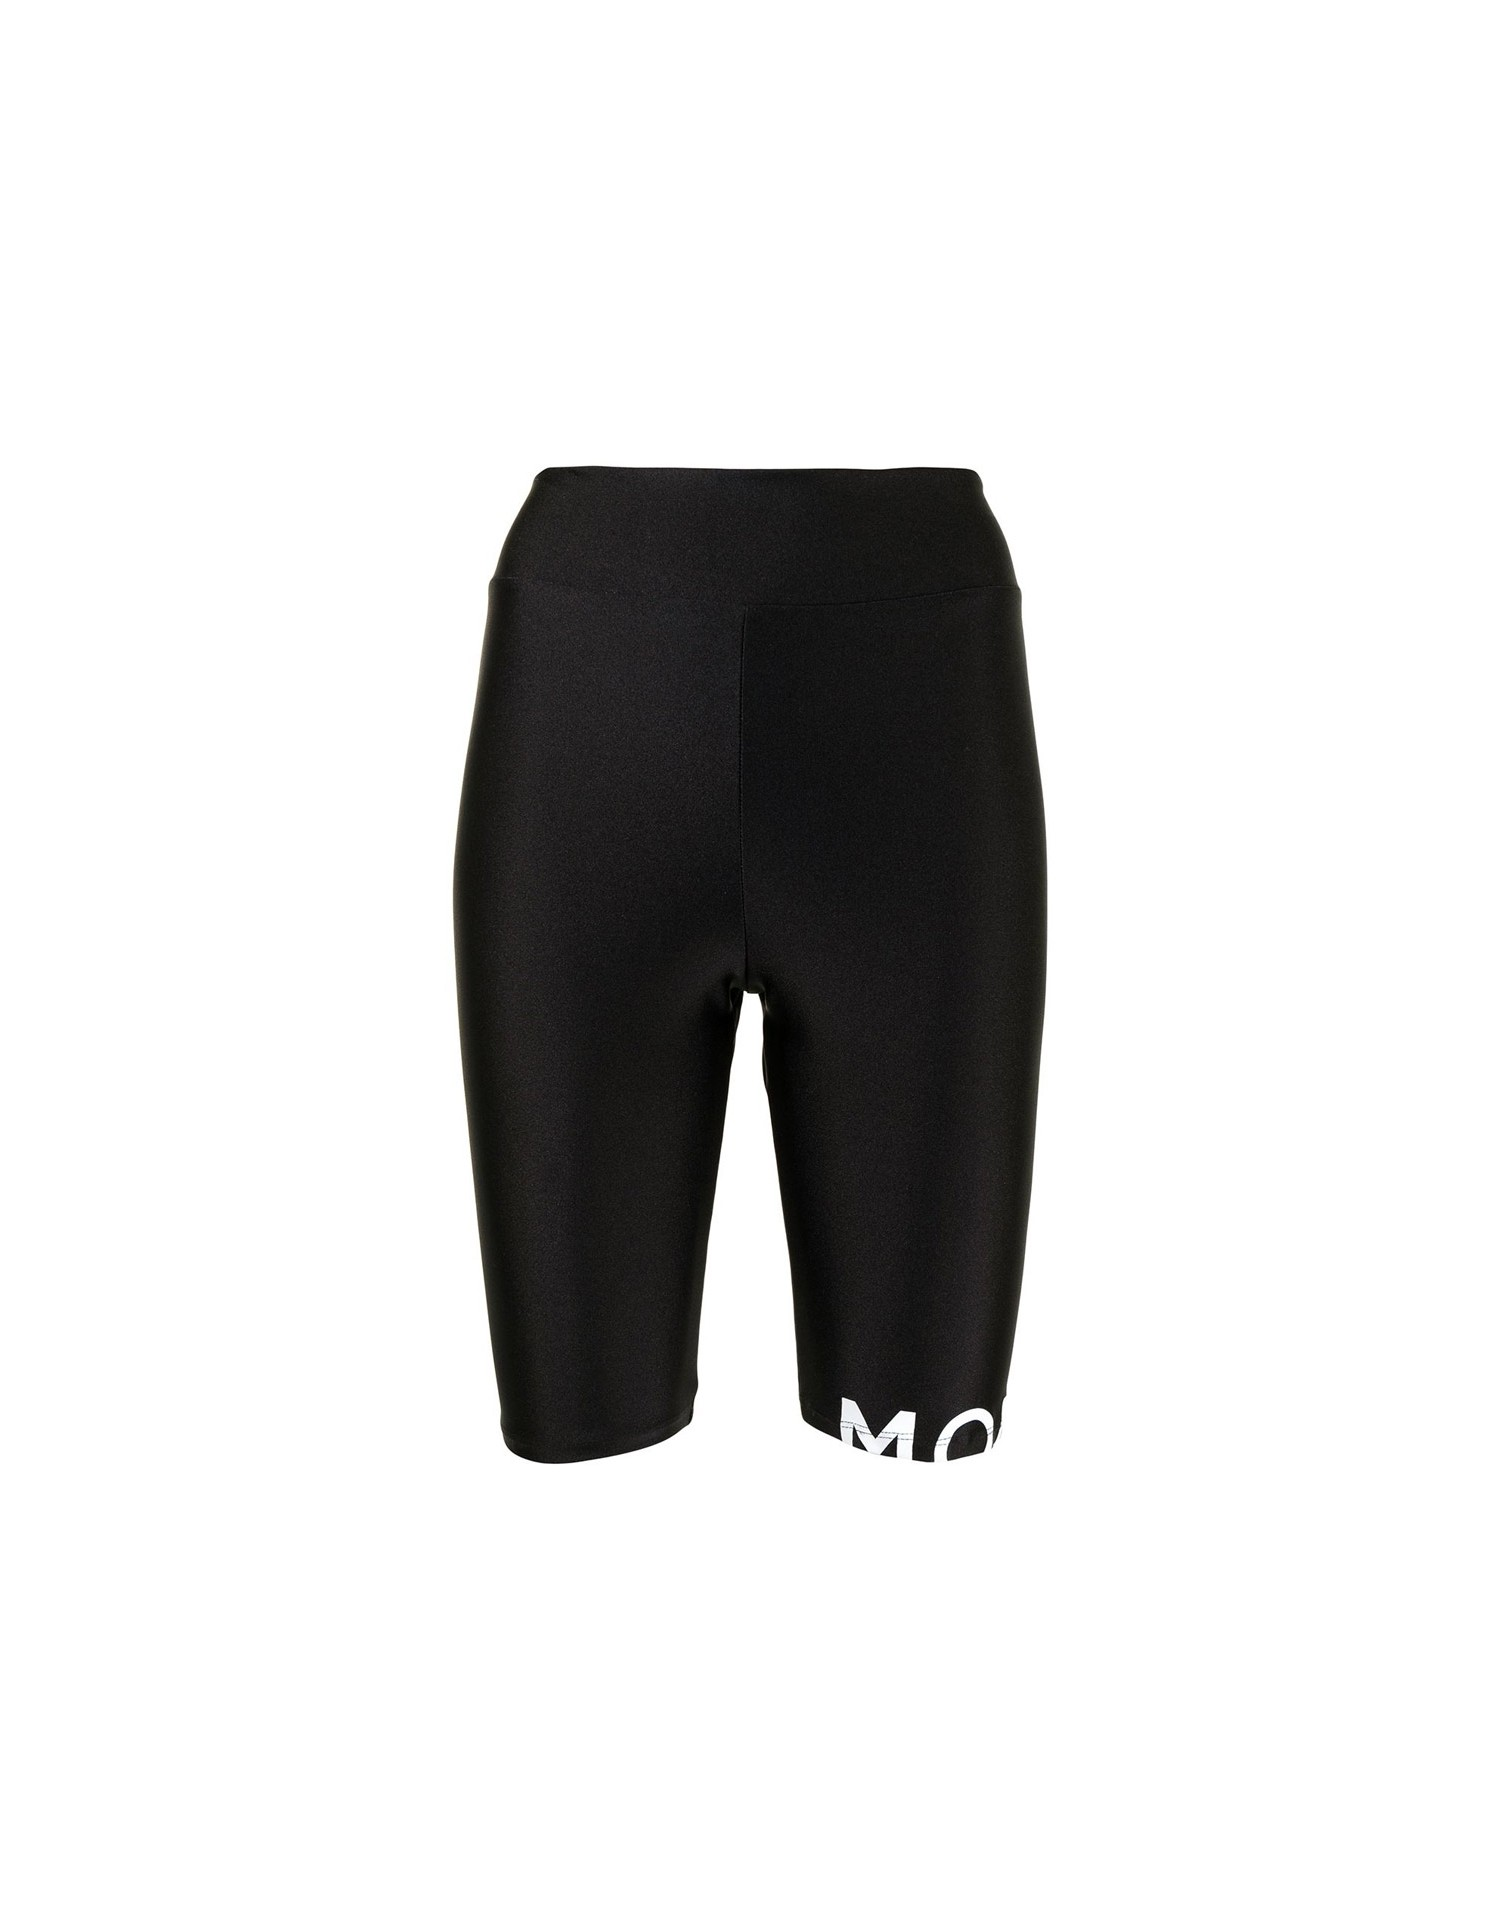 MONSE Bike Shorts in Black Flat Front